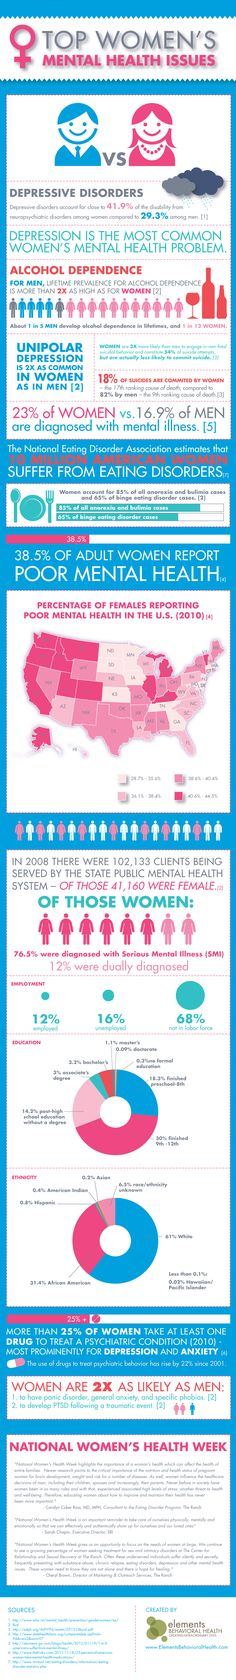 Top Women's Mental Health Issues #Infographic